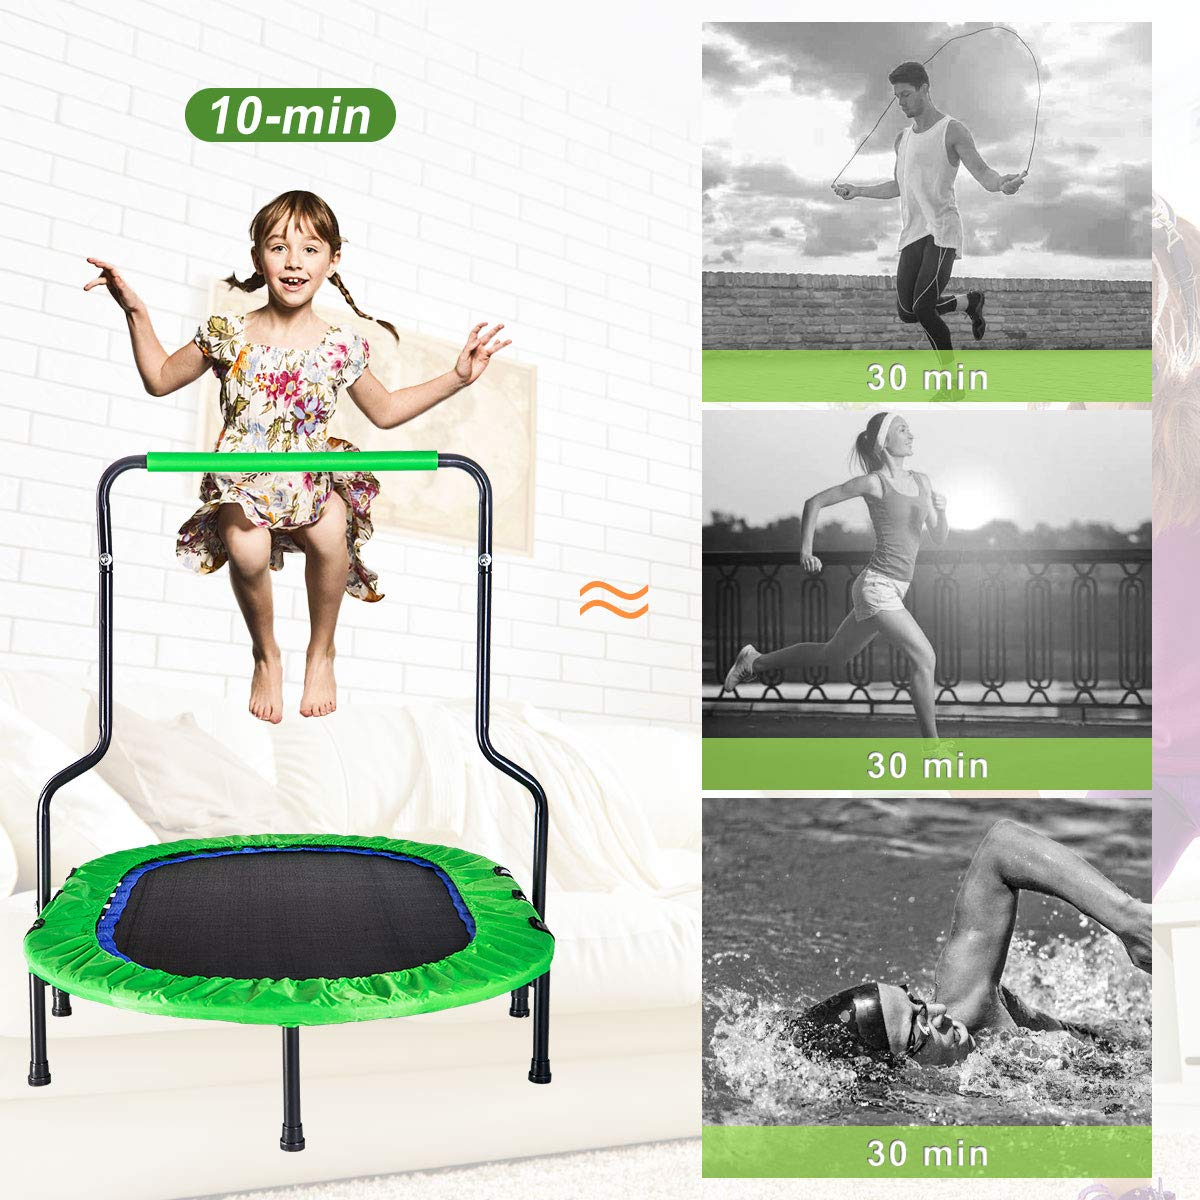 Merax Mini Rebounder Trampoline with Handle for Two Kids, Parent-Child Trampoline (Green) by Merax (Image #6)